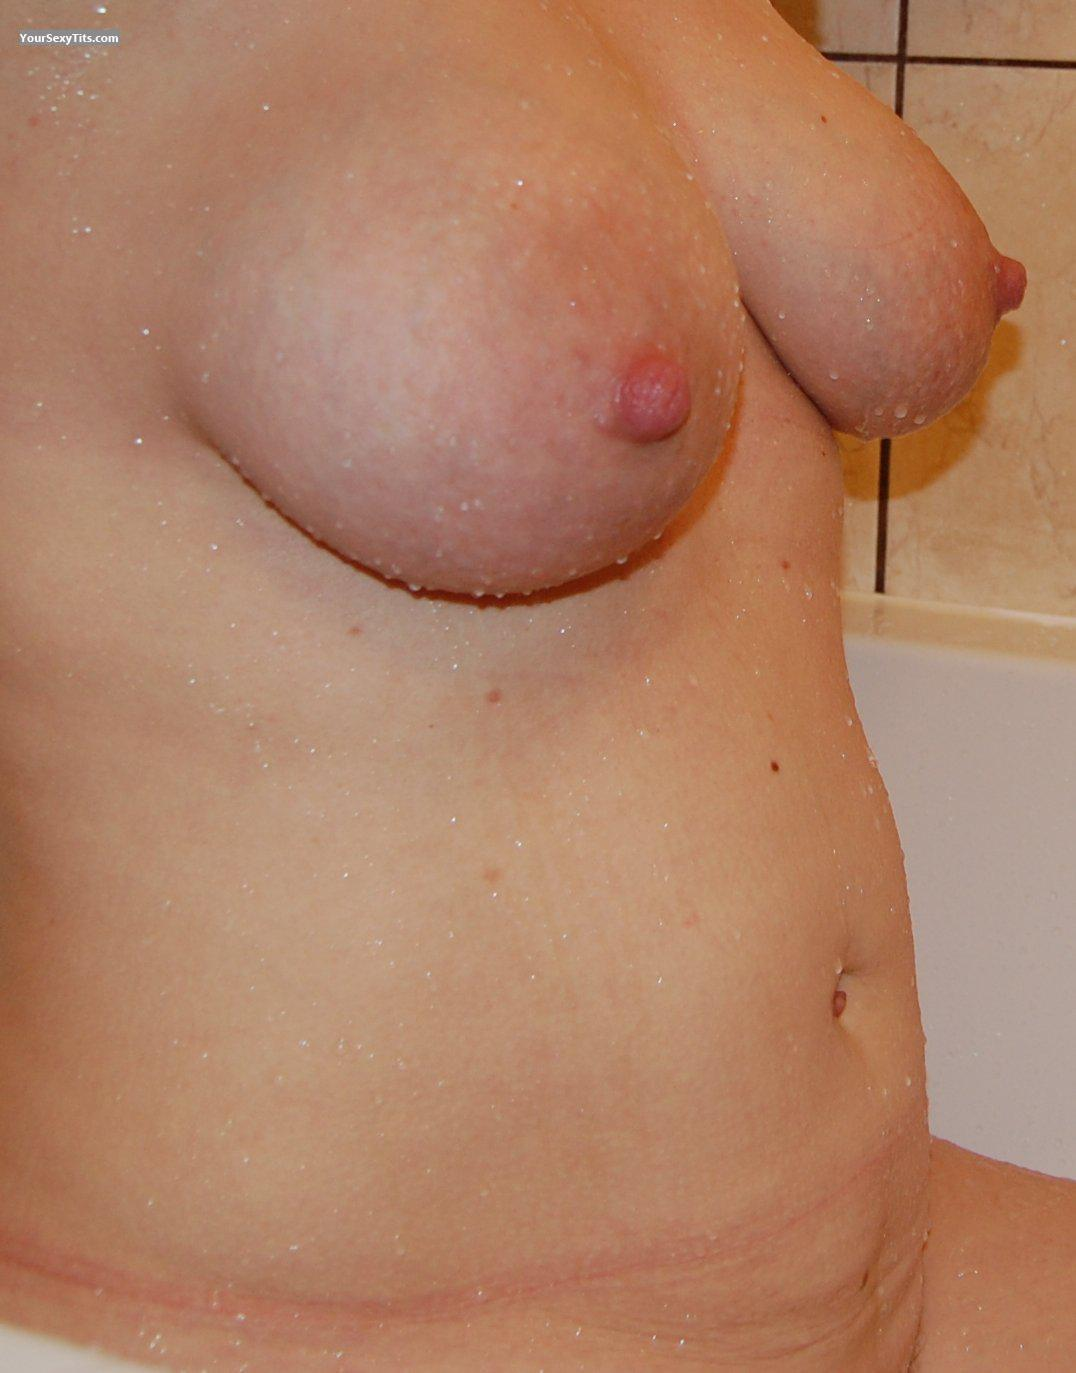 Tit Flash: Wife's Medium Tits - Doris from Poland